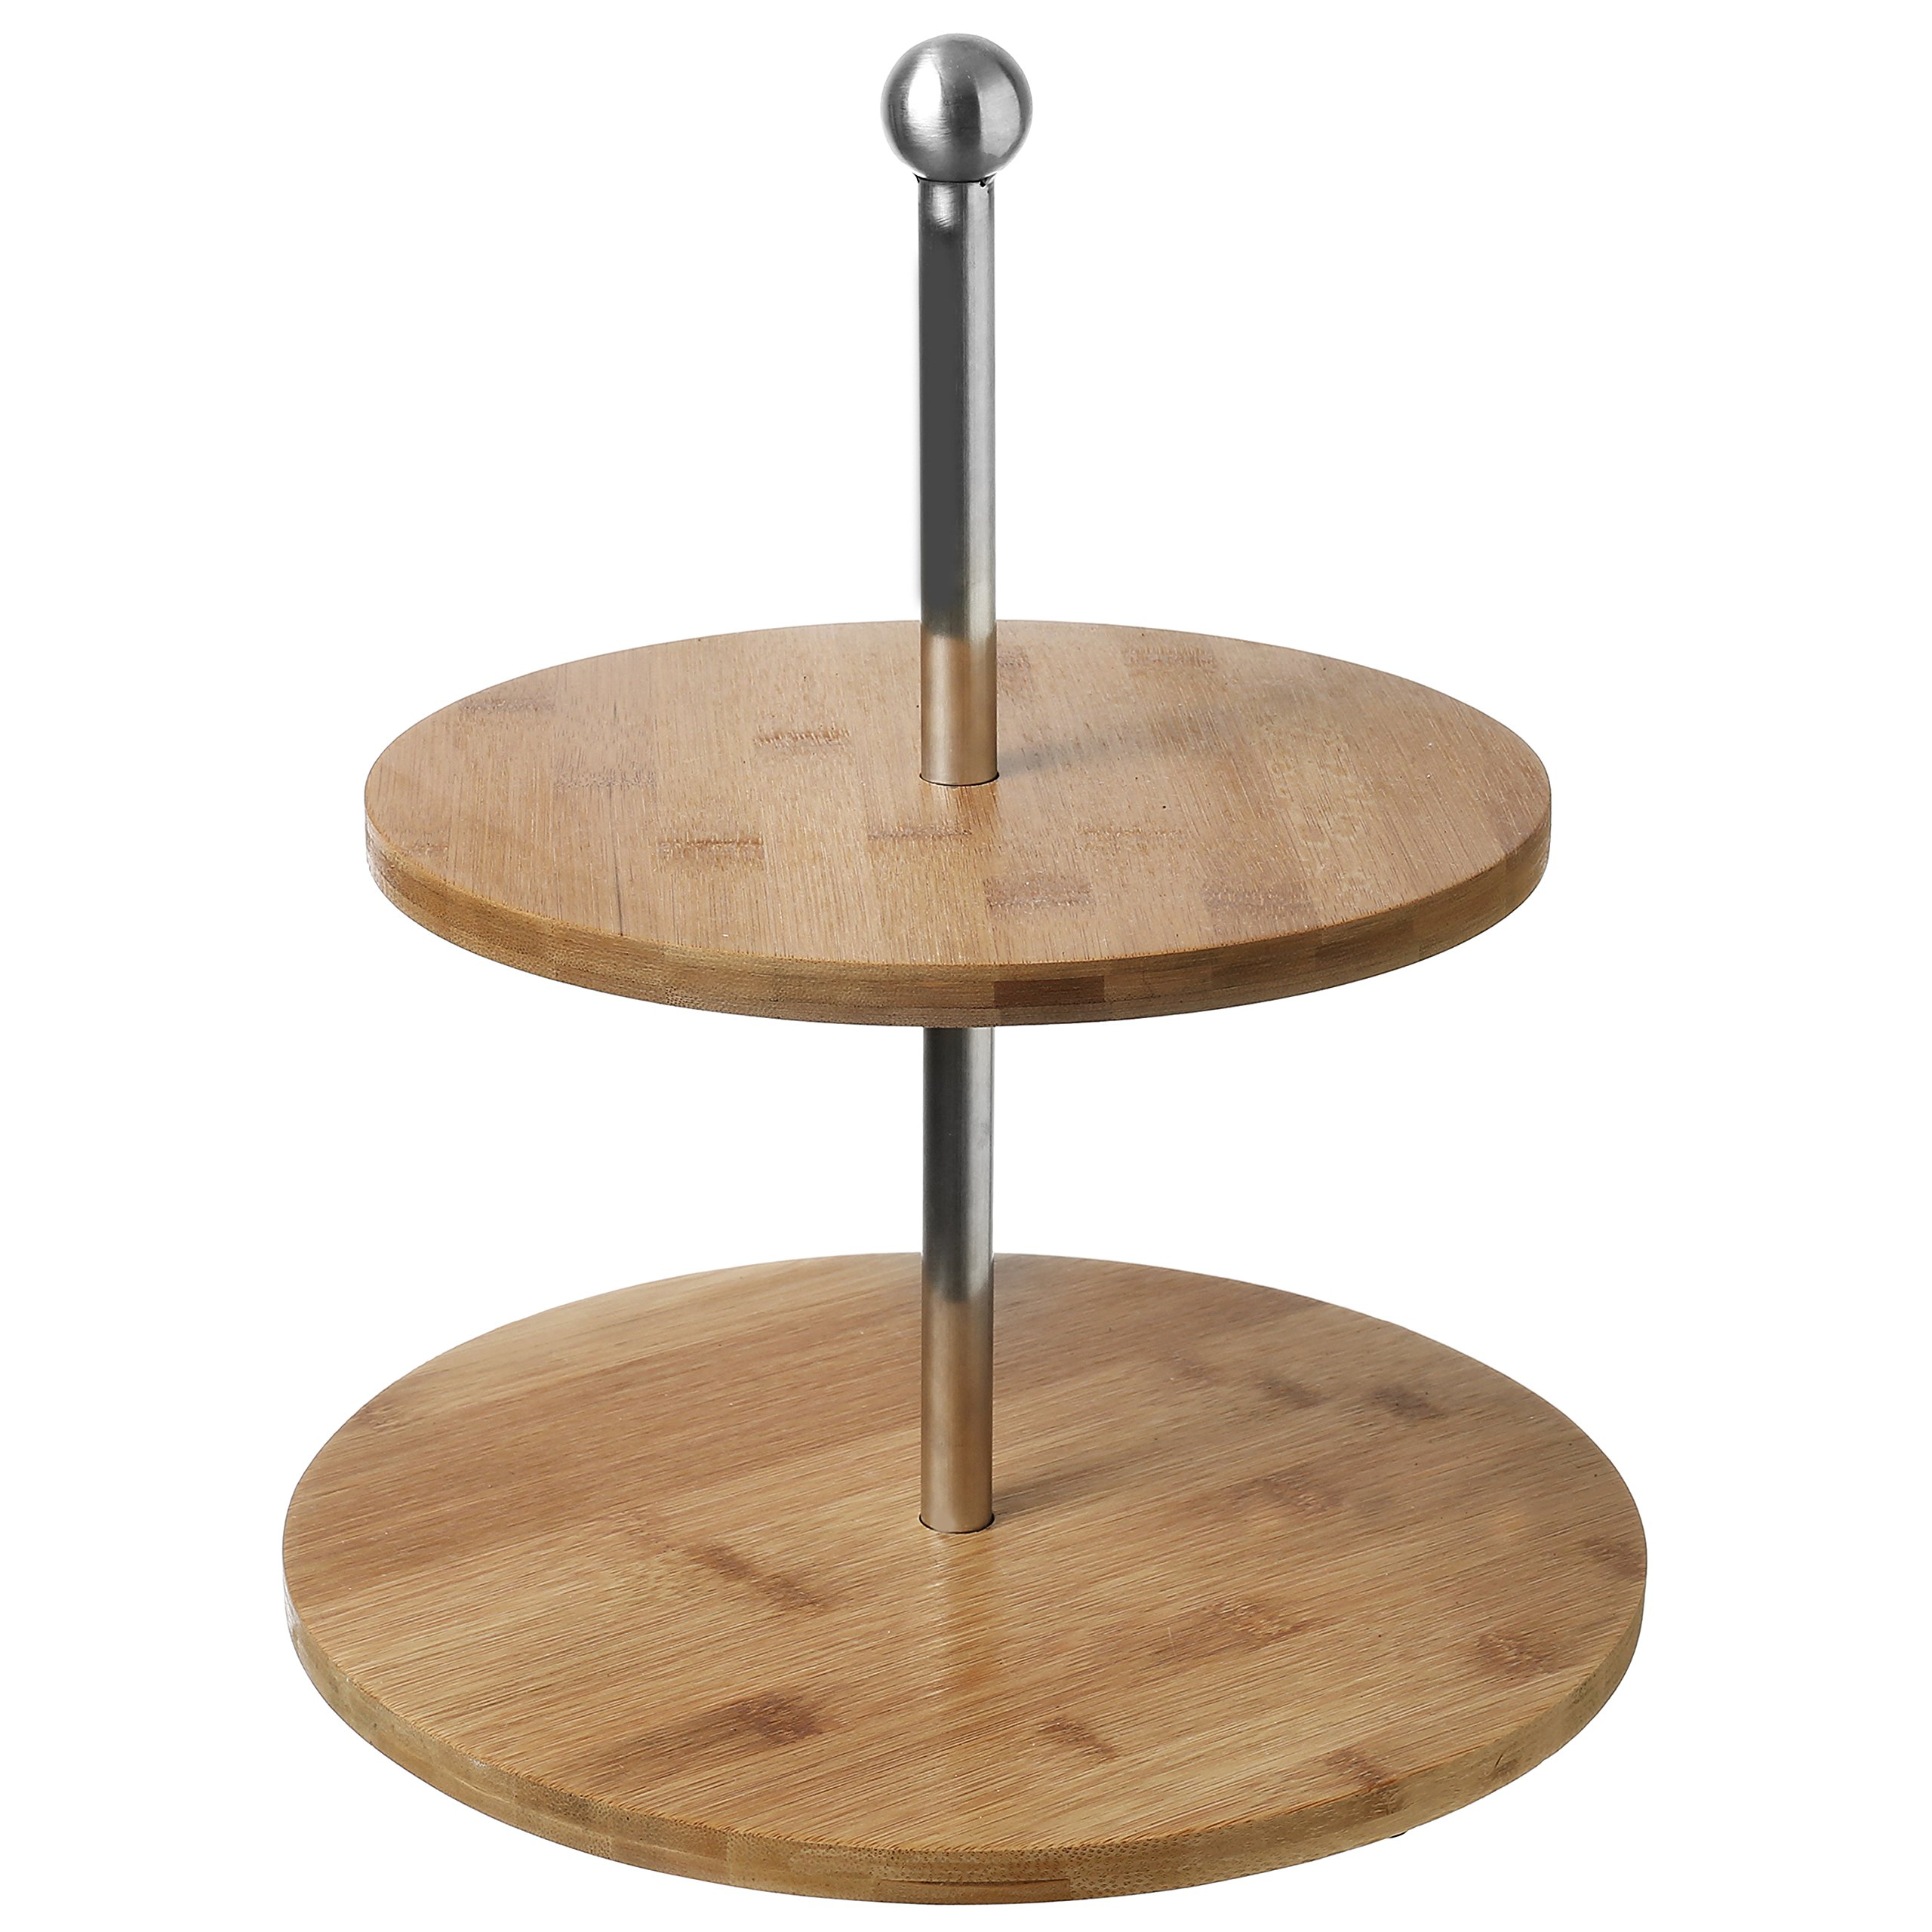 2-Tier Bamboo & Stainless Steel Cupcake Stand, Dessert & Appetizer Tower Trays